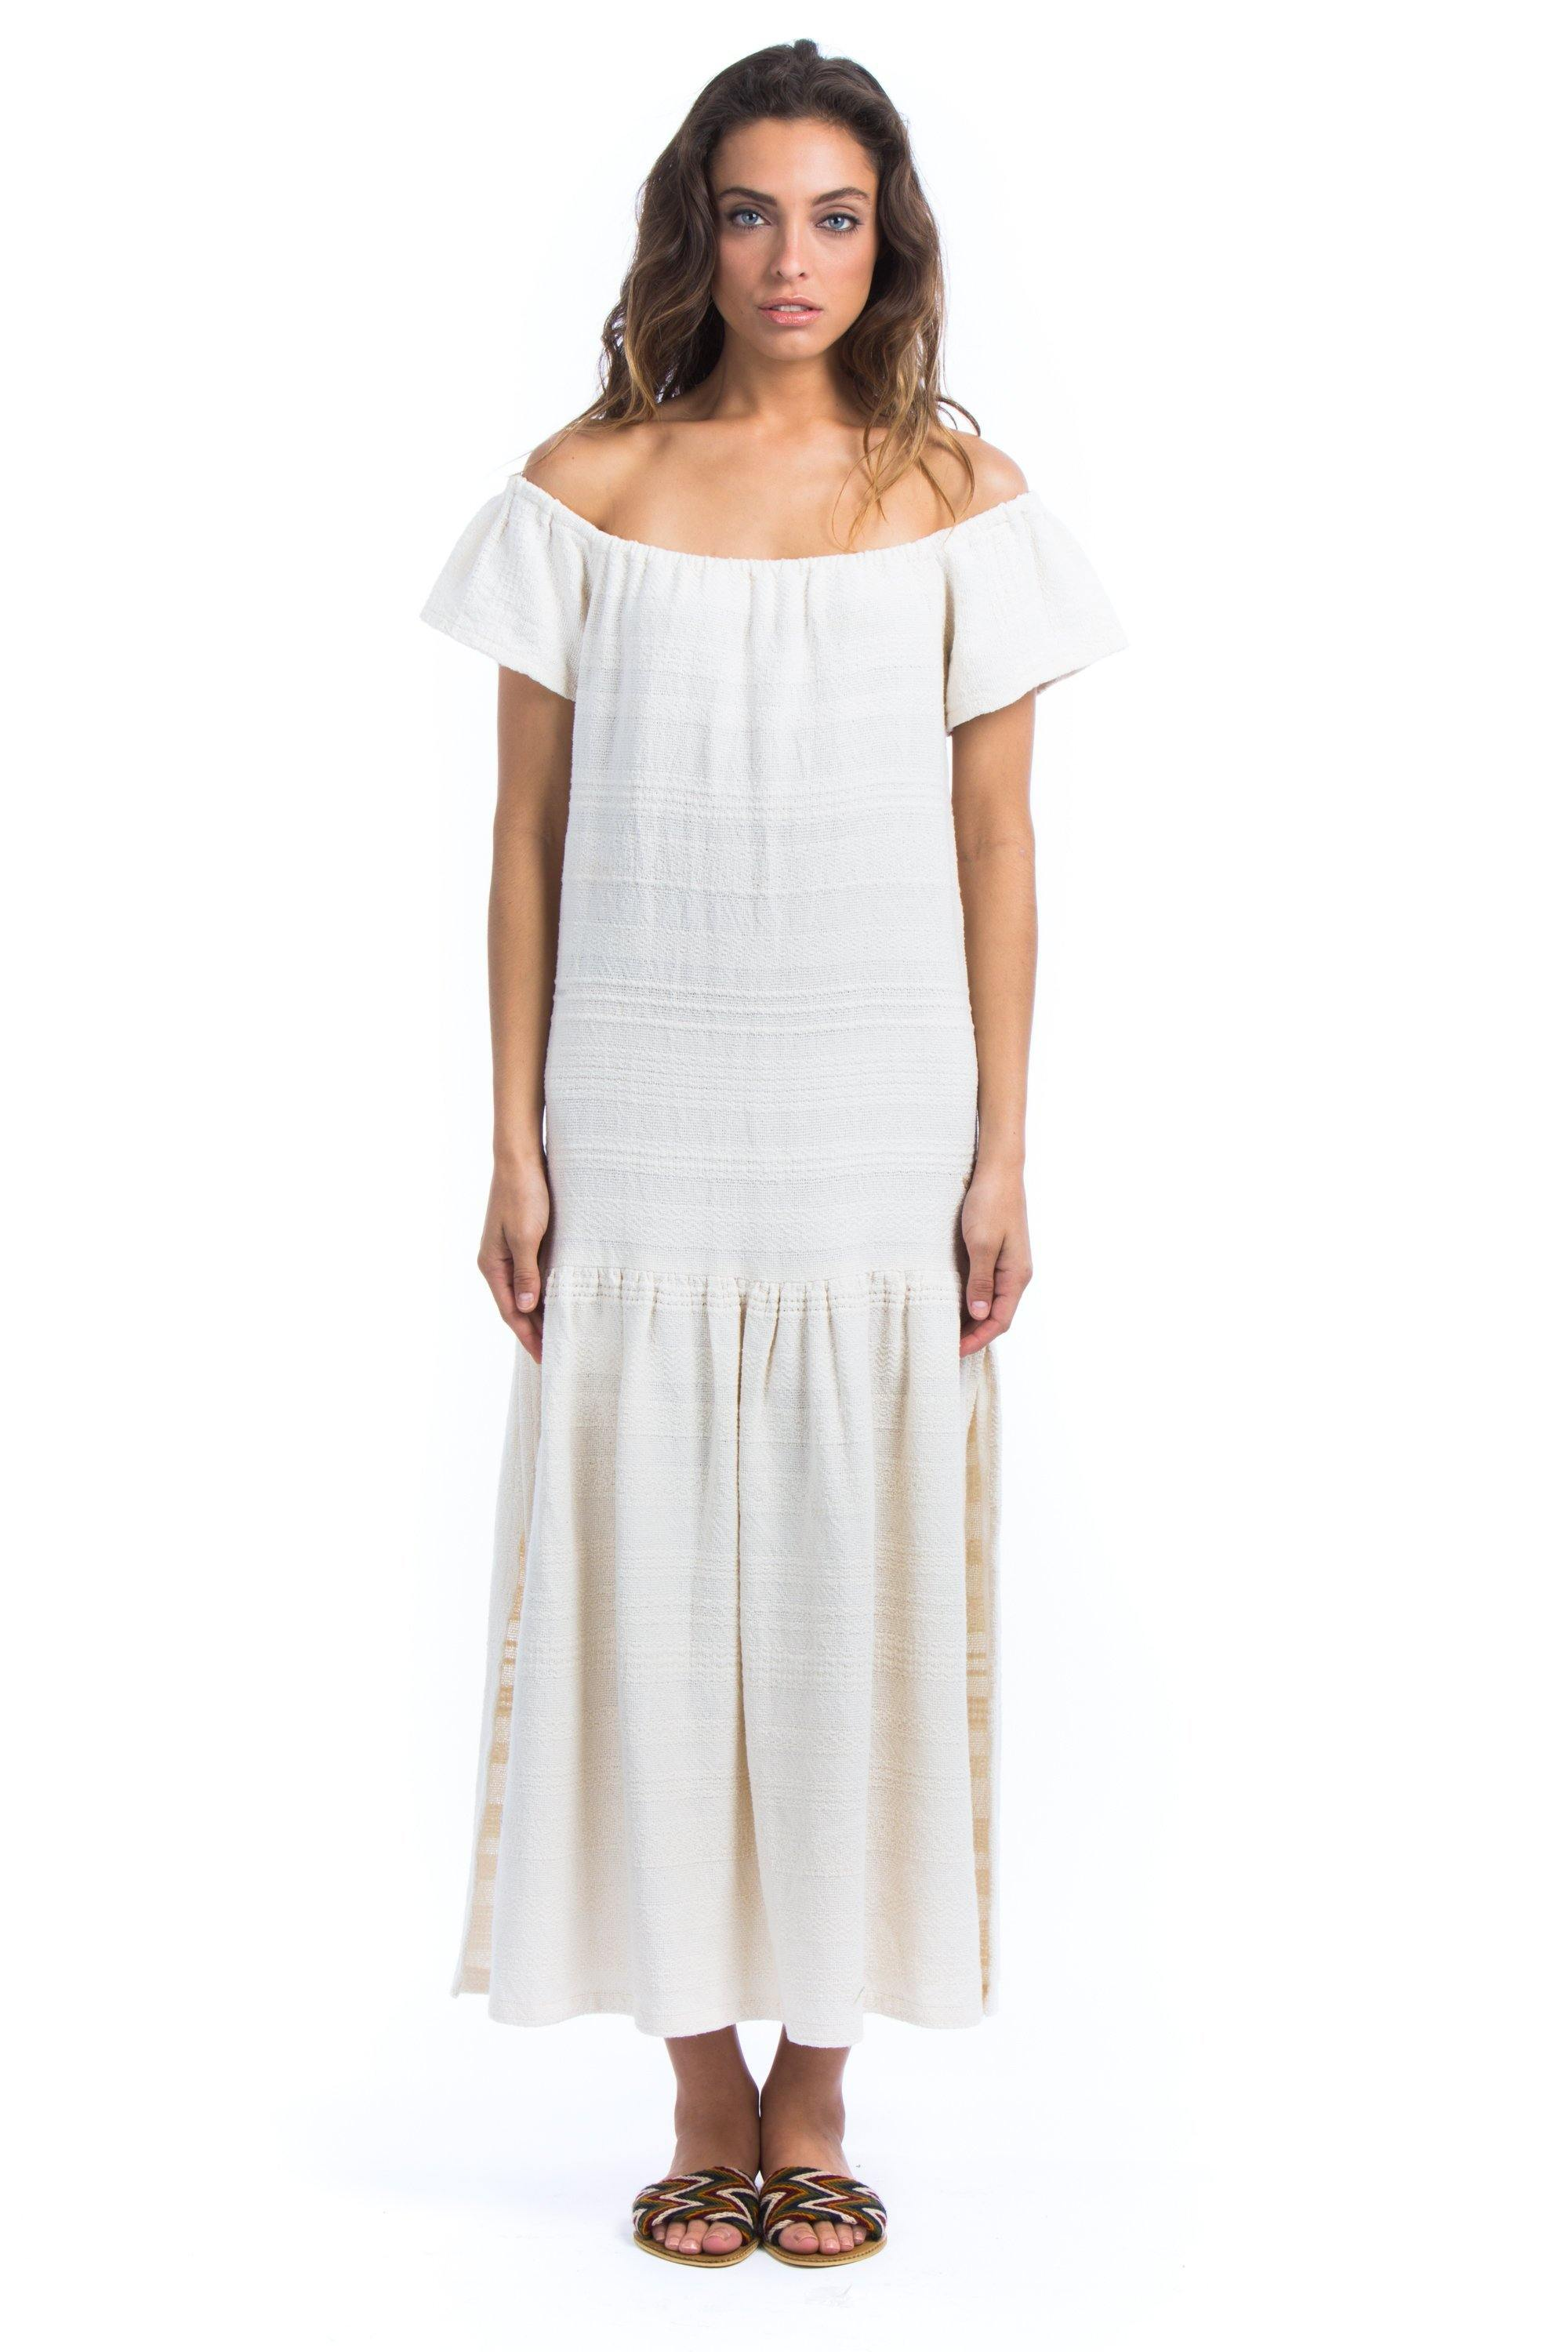 VIOLA ELENA - Handwoven Cotton Dress - Natural Rough